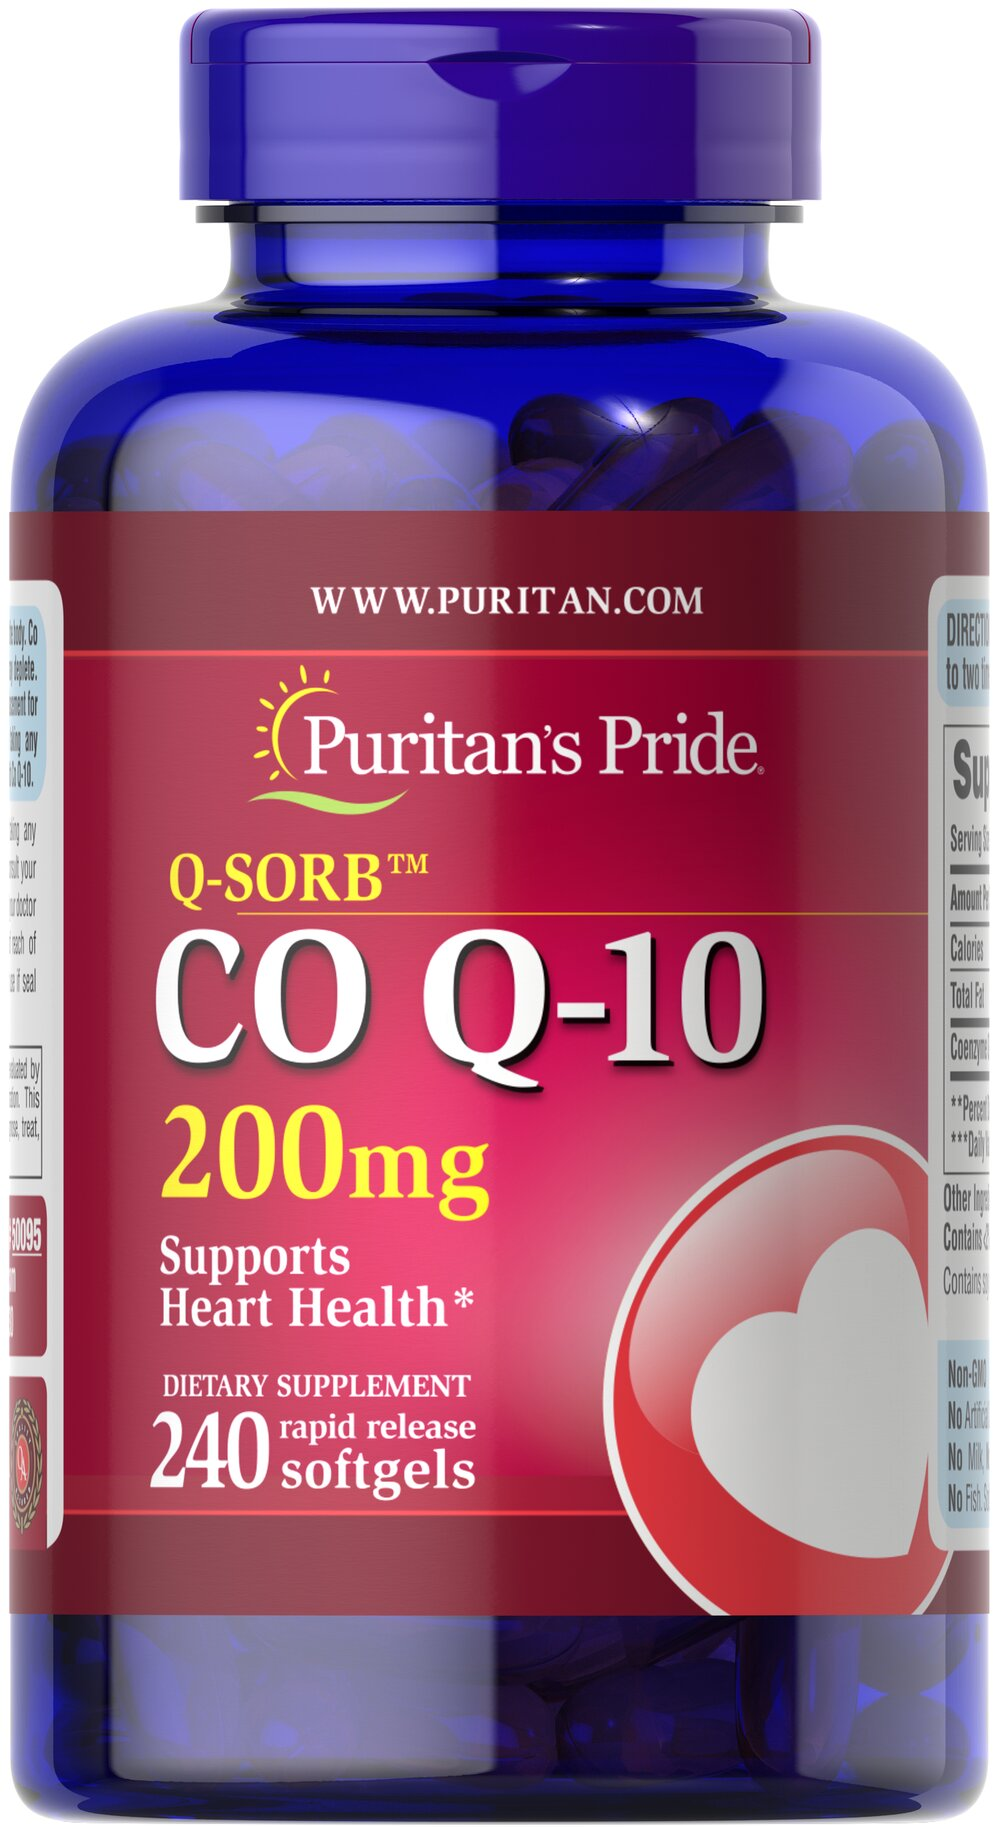 Q-SORB™ Co Q-10 200 mg  240 Rapid Release Softgels 200 mg $99.99